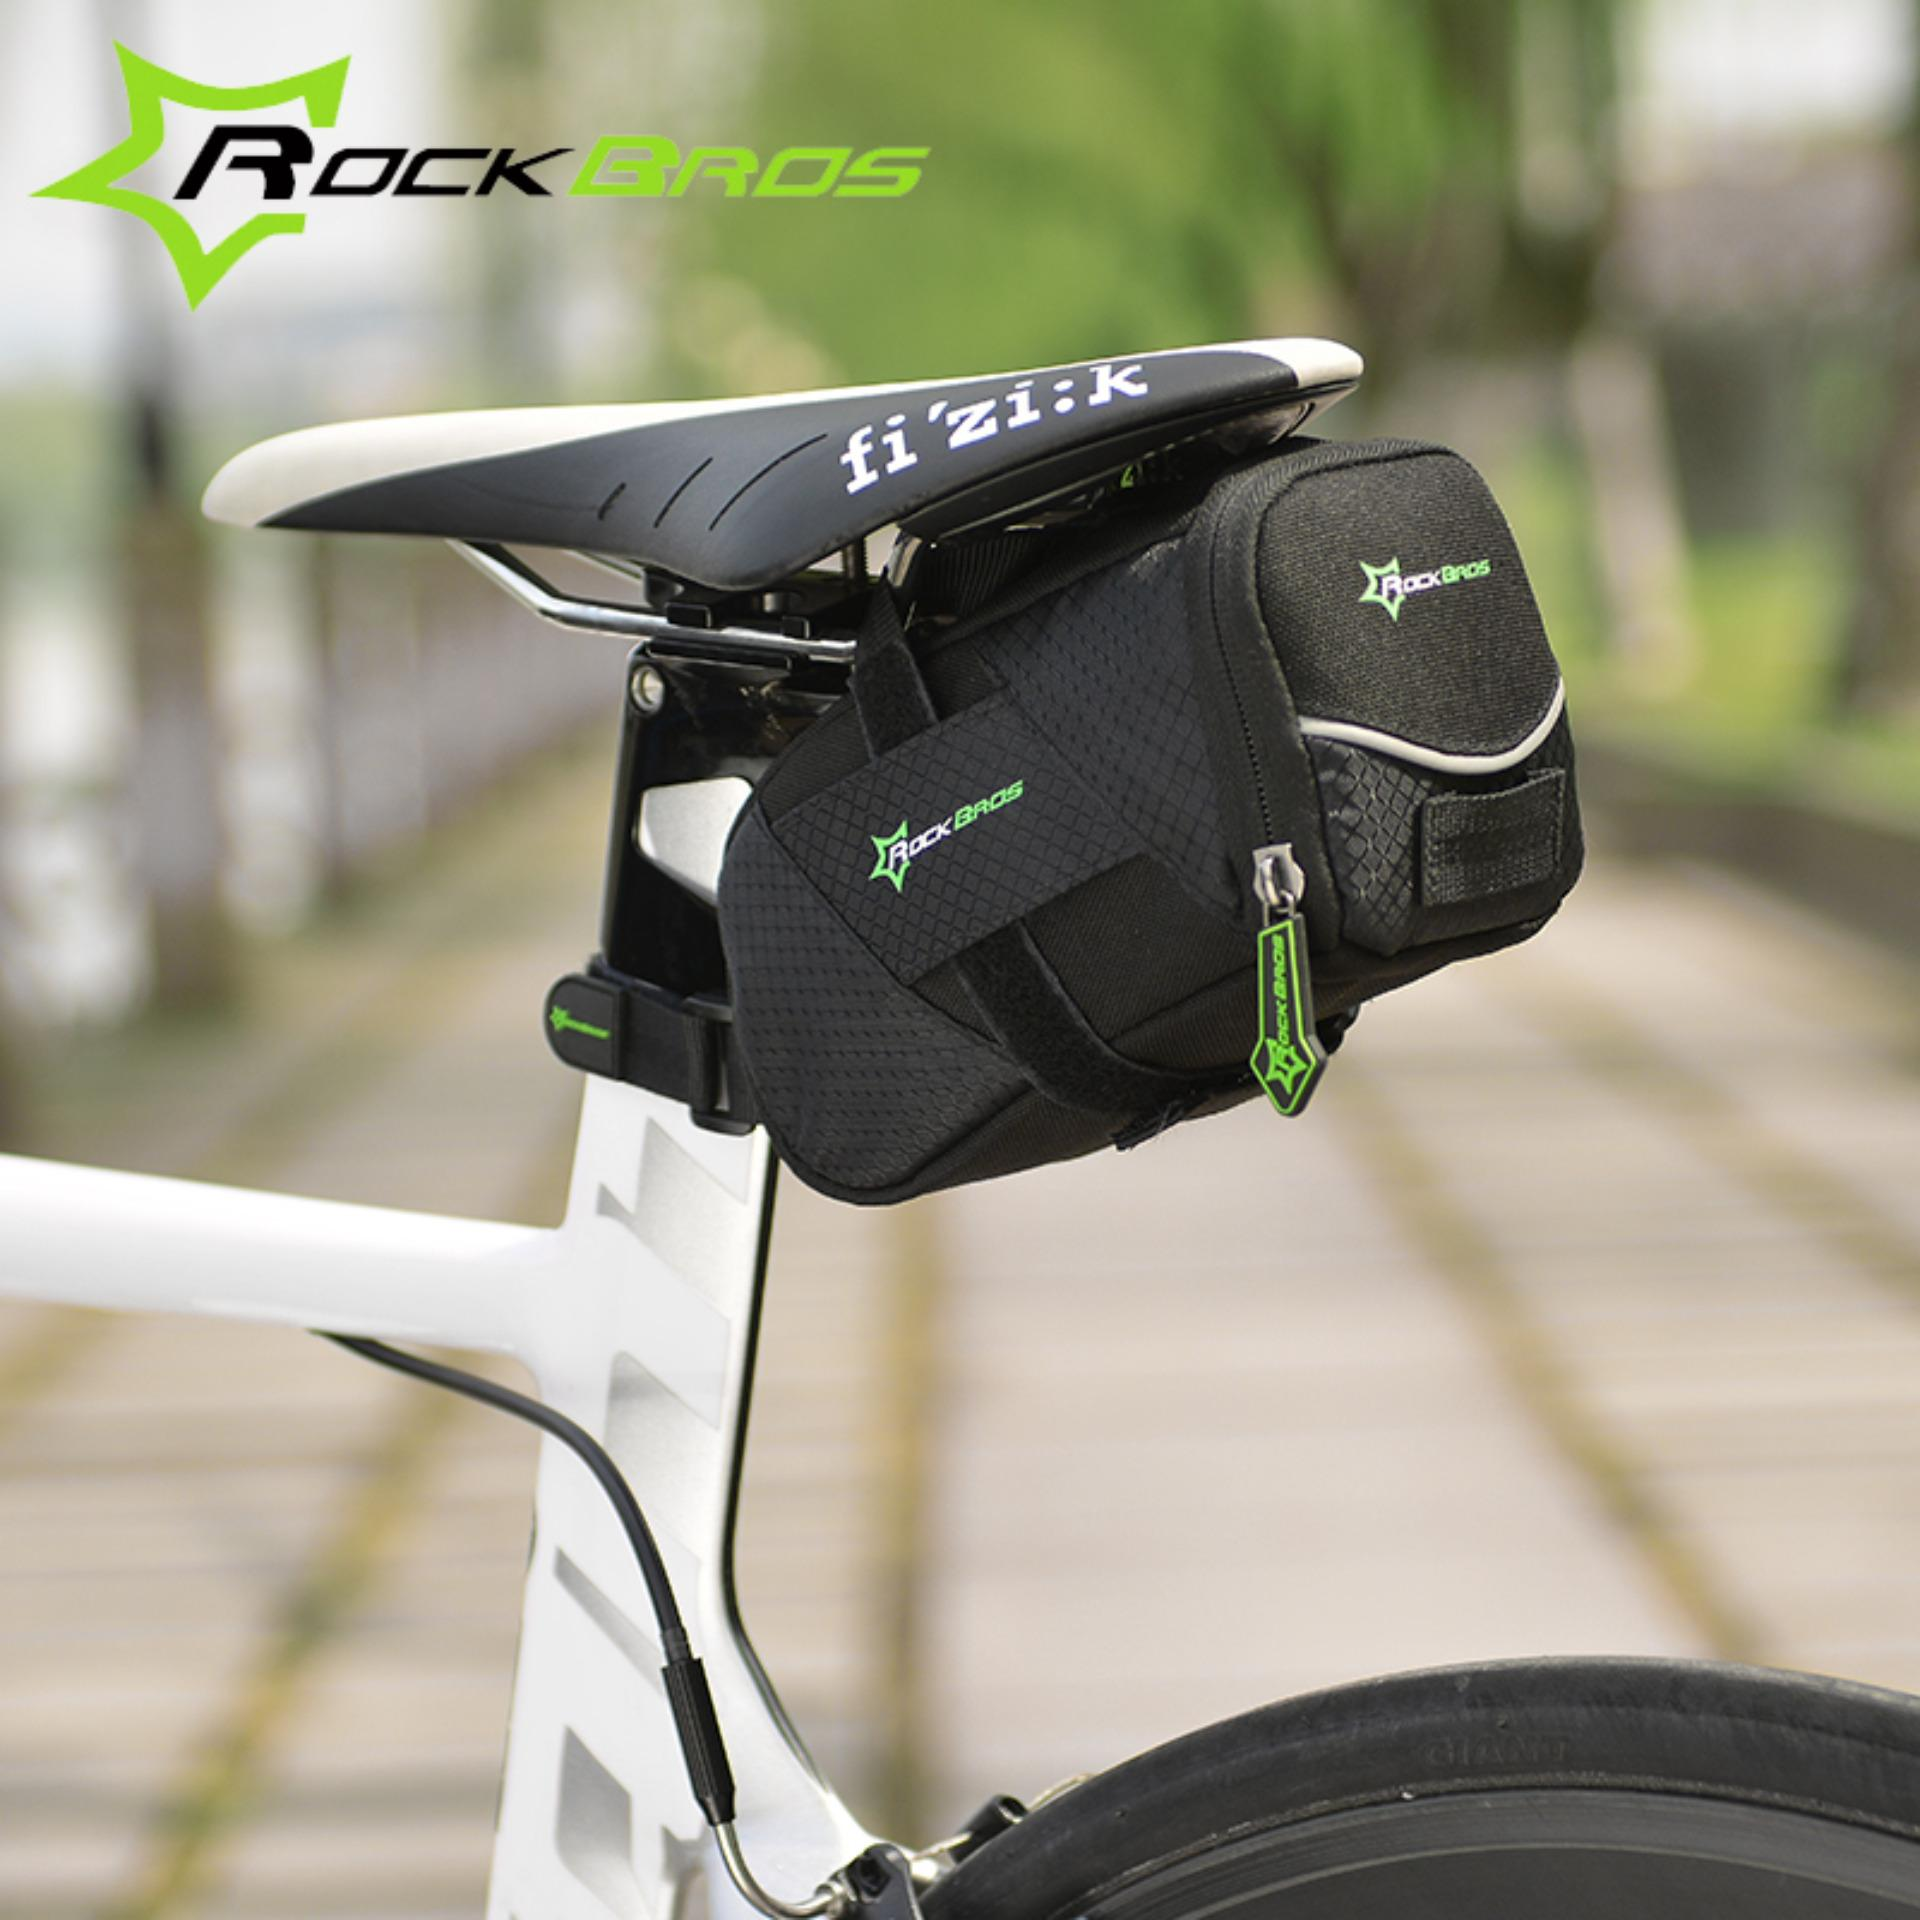 ... RockBros Moutain Road Bike Bag Durable Quick Release Bicycle SaddleBag Cycling Back Seat Seatpost Tail Bag ...